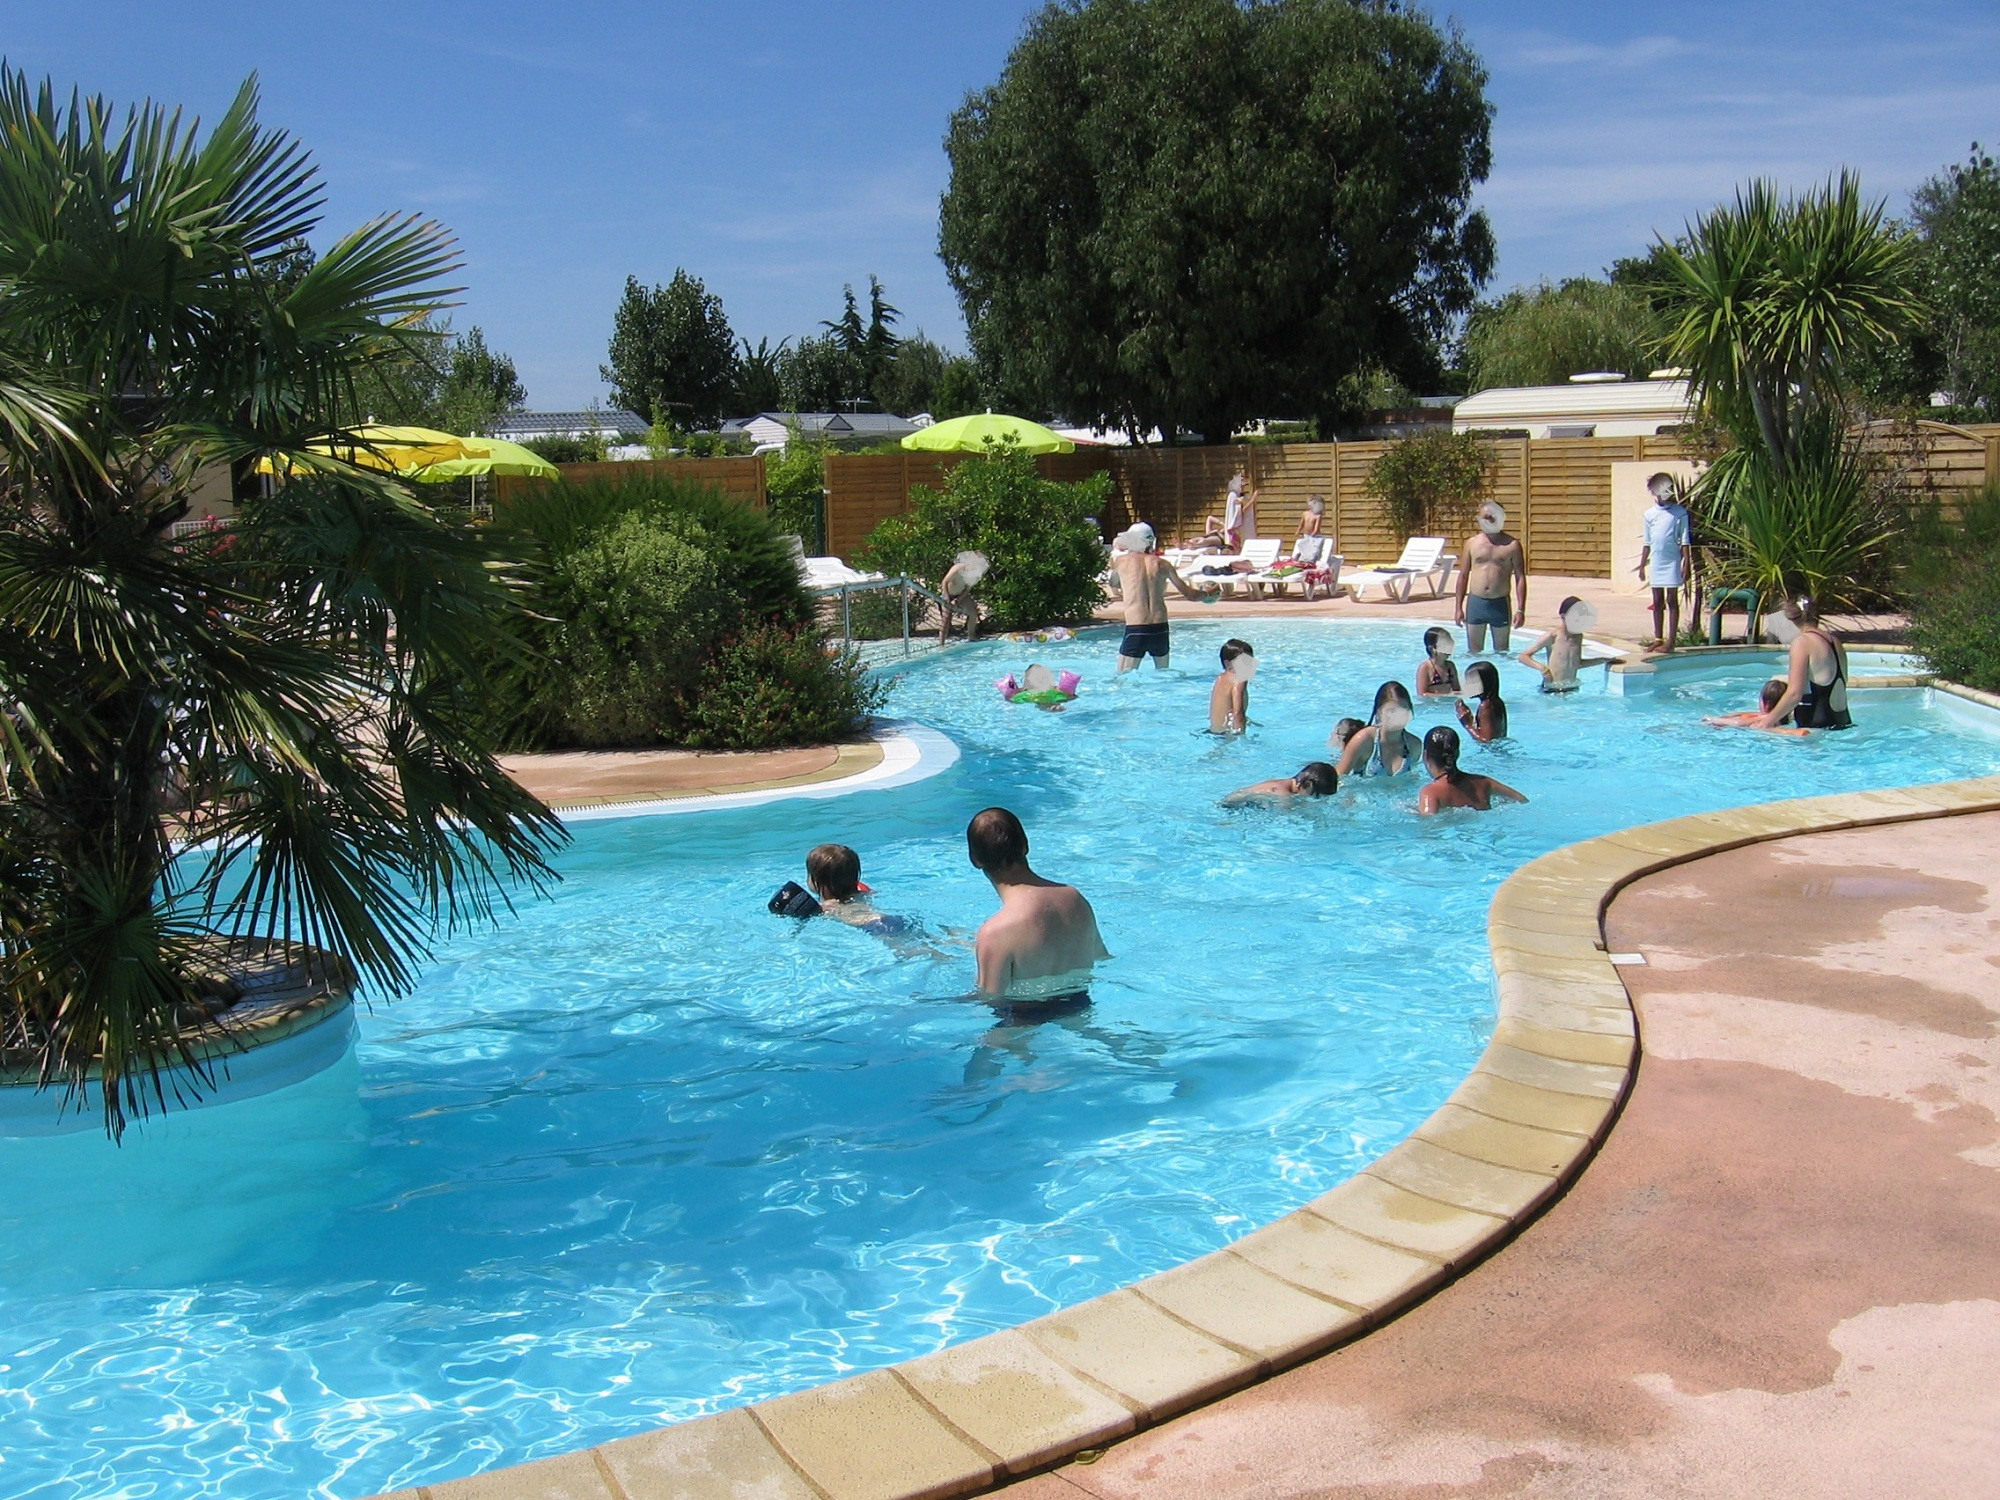 European Caravan Club: The Place For All Motorhomes And ... avec Piscine Auray